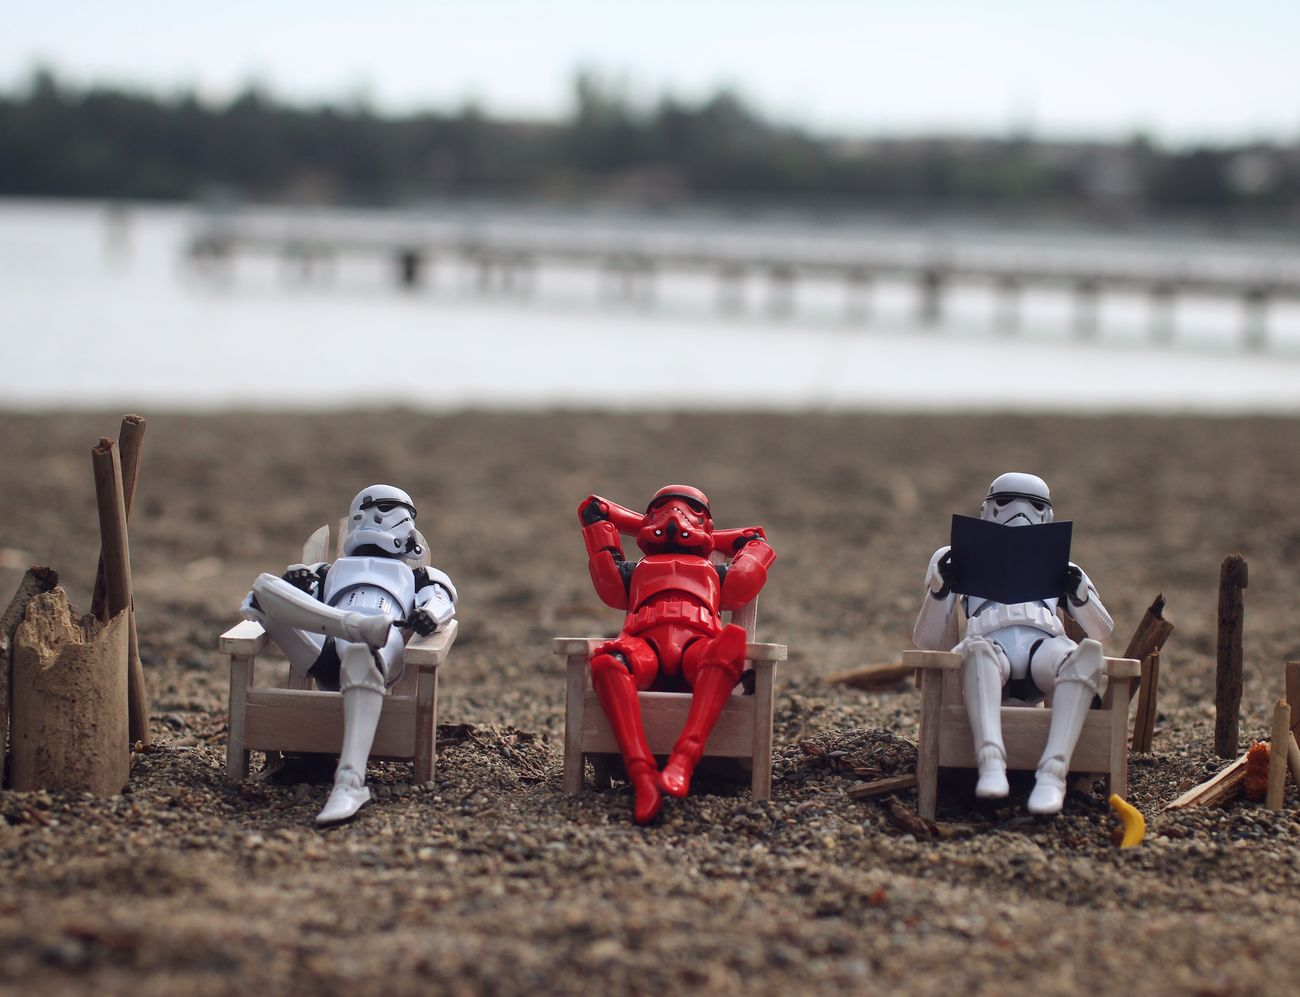 """""""Sun burn much?..."""" Happy StarWars Day!! And may the 4th be with you! :D MayThe4thBeWithYou Starwarsblackseries Stormtrooper Starwars Starwarsfigures Toyphotography Toycommunity Banana"""